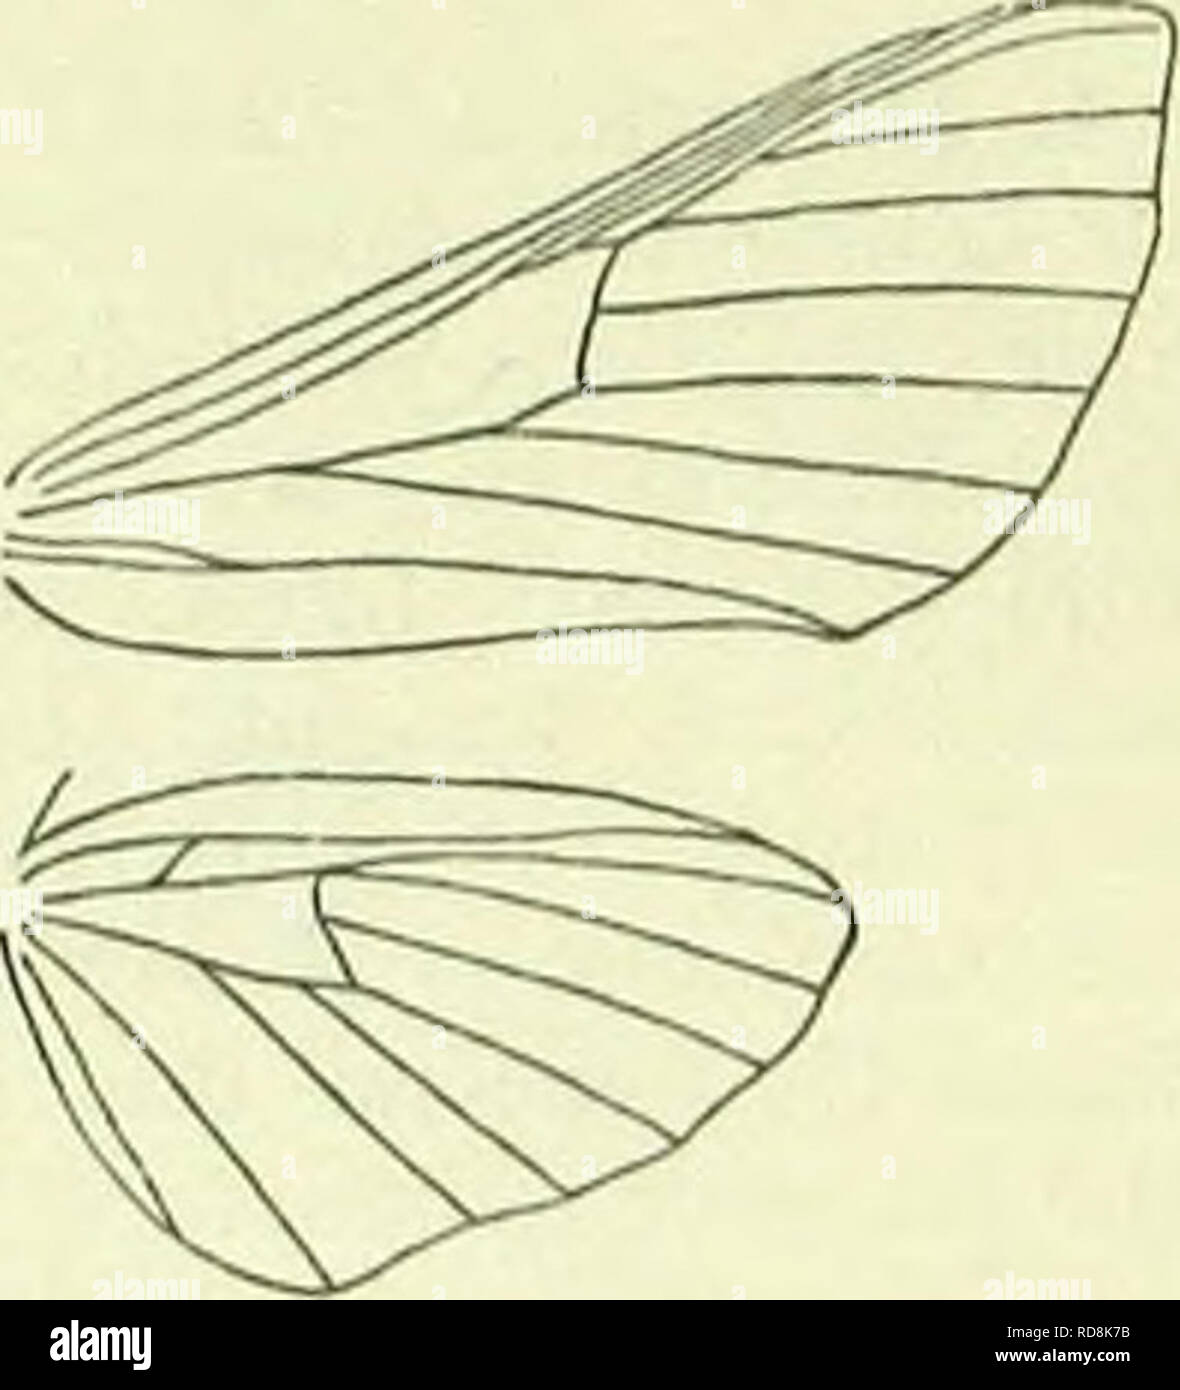 """. A handbook of British lepidoptera. Lepidoptera. deilepiiila] SPHINGIDAE 295 2. Disc of hindwings rosy . . .3. ,, """" yellow-ochreous . 1. porcelhts. 3. Hindwings with black subtcrminal fascia. 4. """" without such fascia . 2. etpenoi: 4. Fore wings with anterior edge of pale band straight 5. lineata. """" """" ,, """" irregular 5. 5. Edge of dark postmedian band reaching middle of dorsum . 6. euphorbiae. """" """" """" ,, reaching dorsum before middle 7. galii. 6. Forewings light brown . .3. celerio. """" olive-green ... 4. nerii. 1. D. porcellus, L. 44-52 mm. Forewings deep yellow- ochreous, more brownish towards ba - Stock Image"""